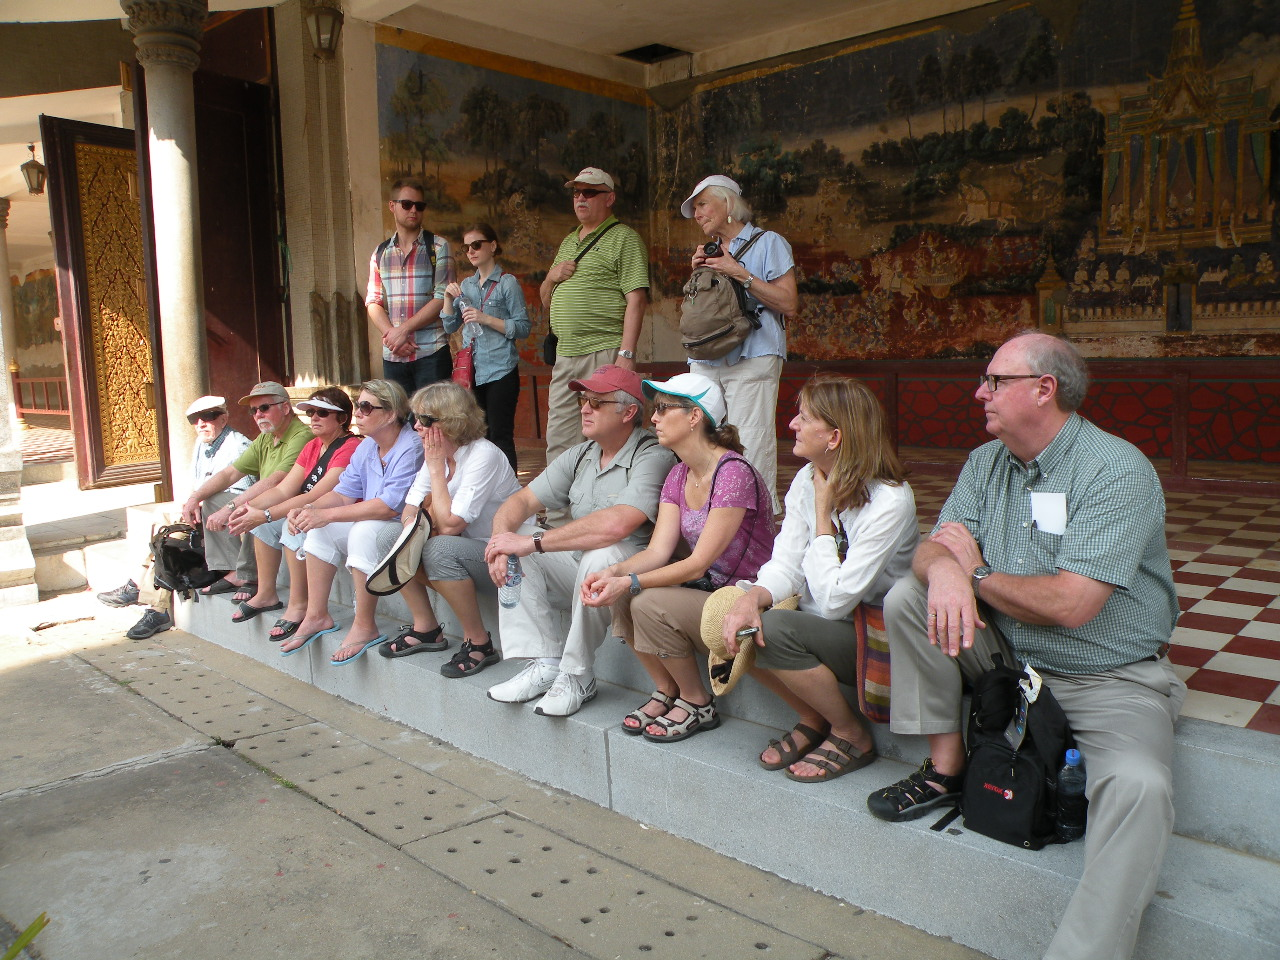 Enjoying a Guided Tour of the Royal Palace